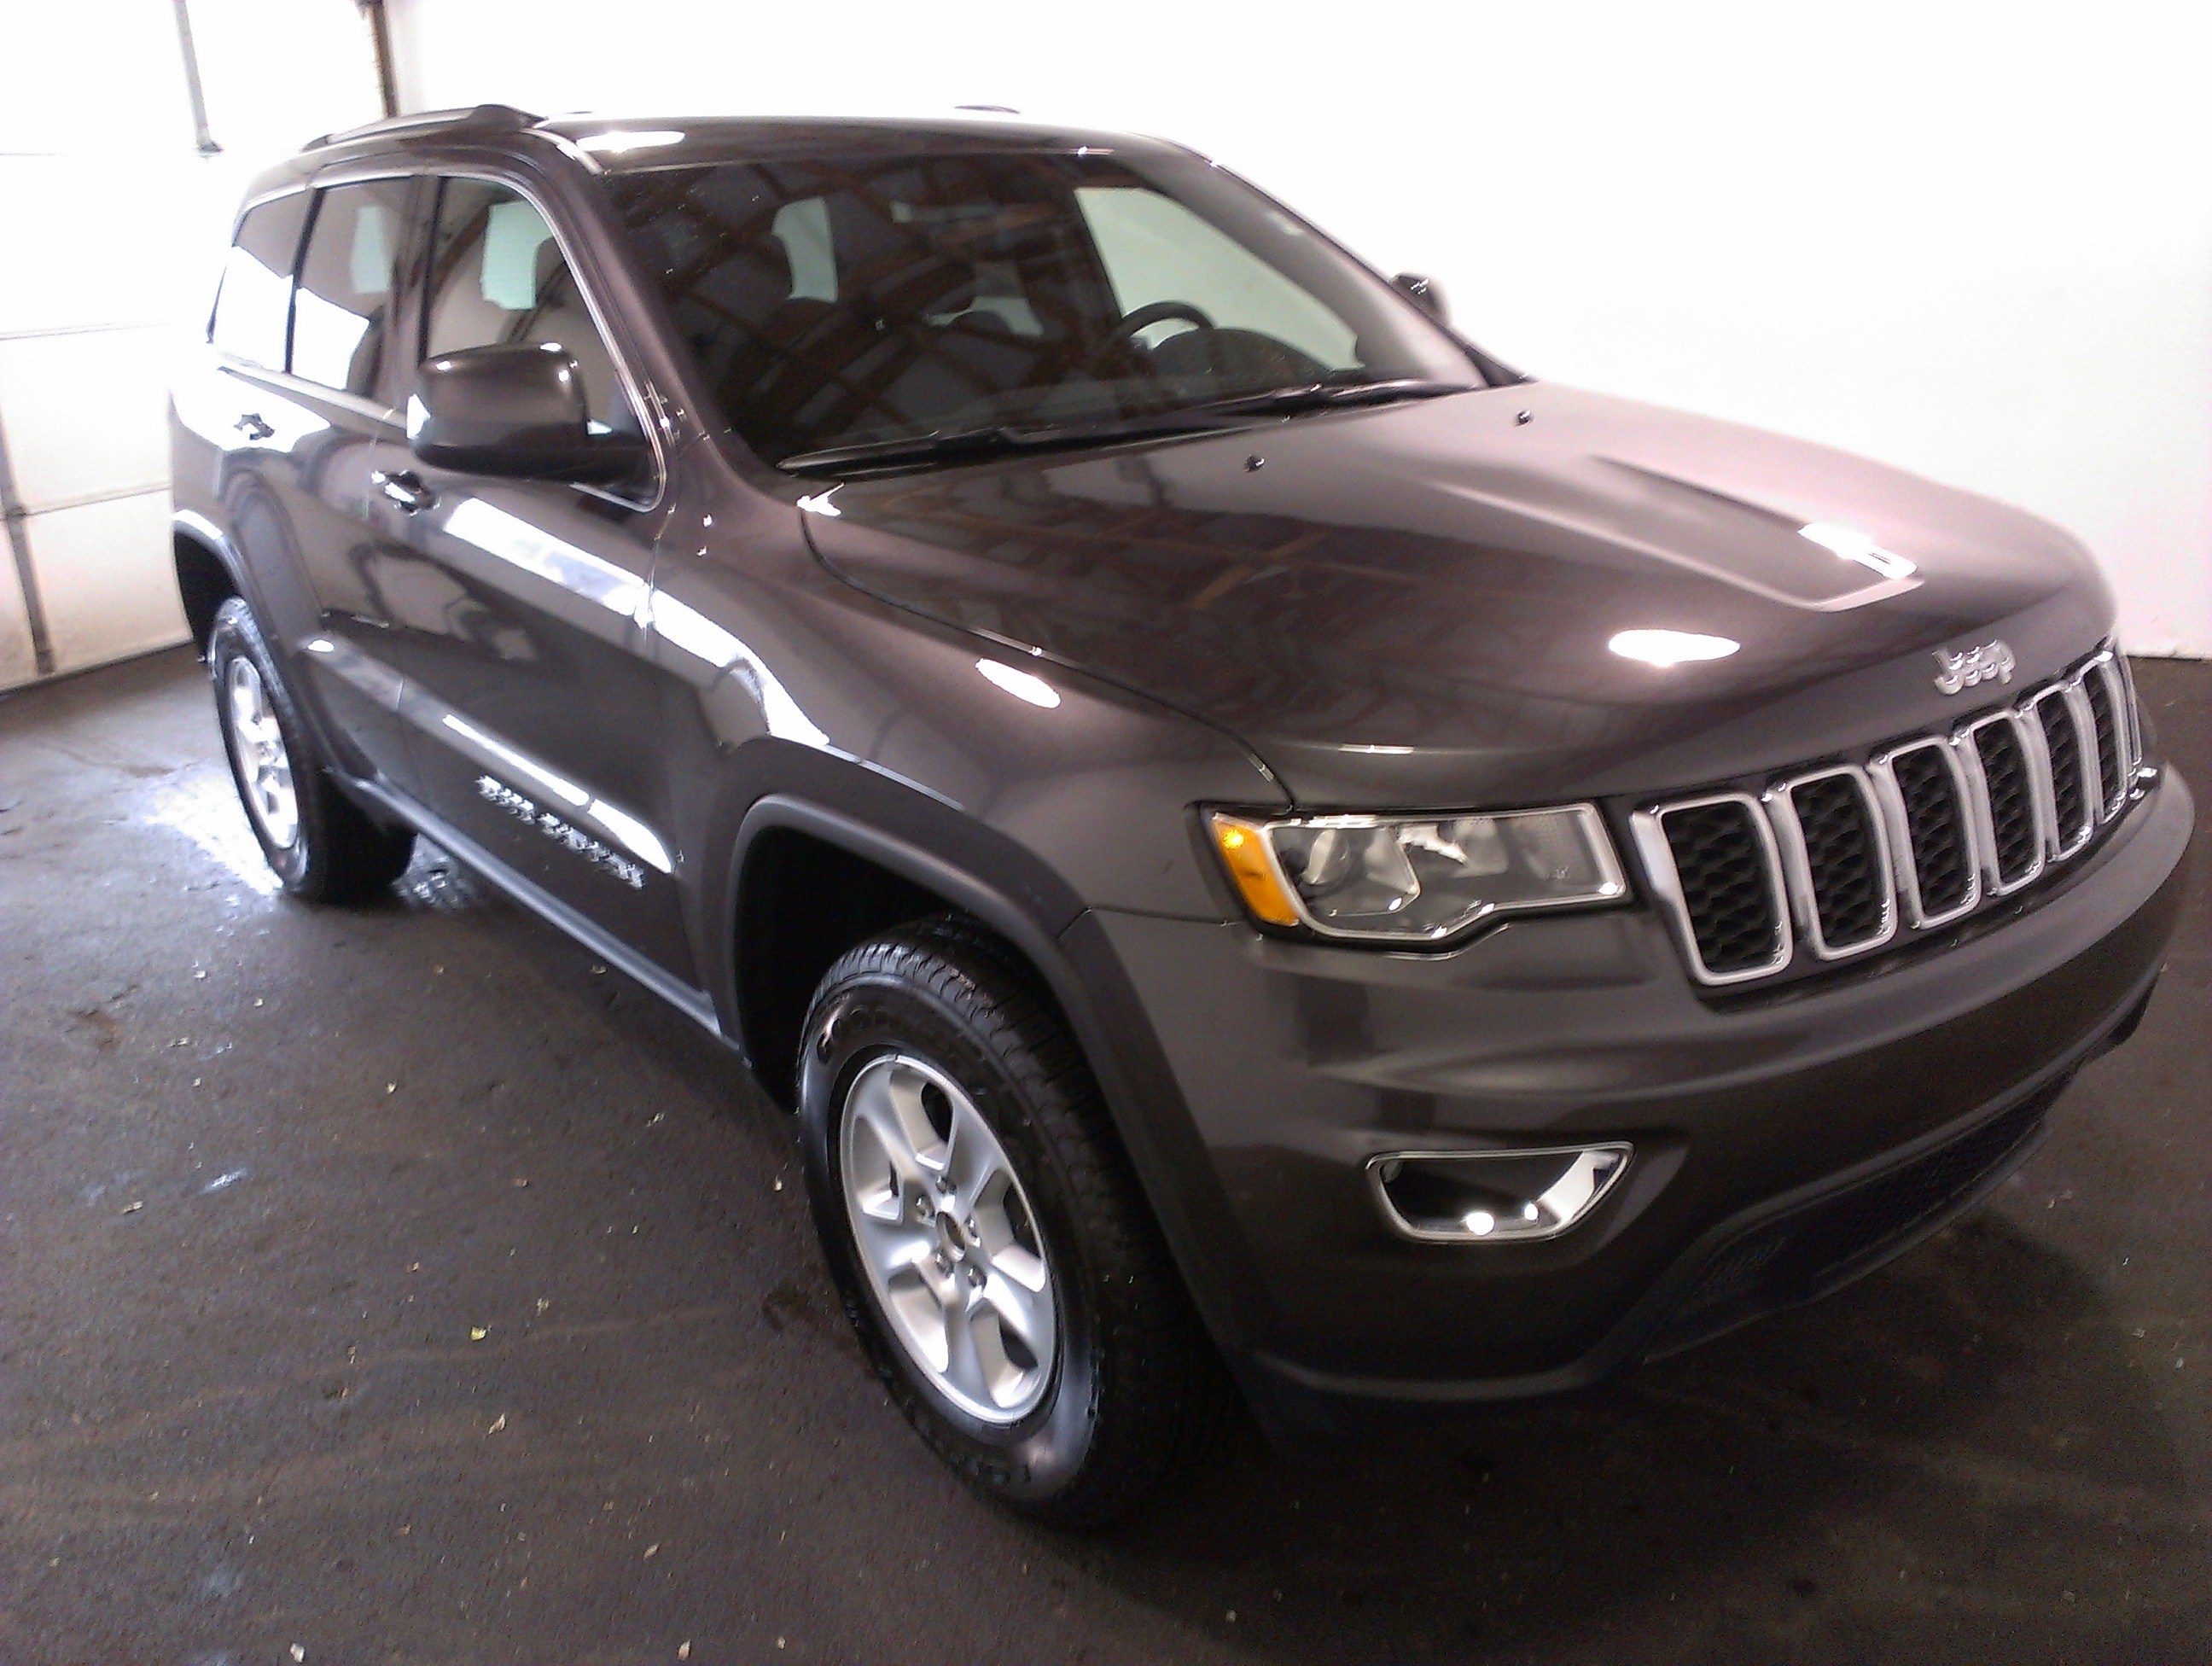 new 2017 jeep grand cherokee laredo 4x4 for sale or lease in beaver falls pa 1c4rjfag1hc818673. Black Bedroom Furniture Sets. Home Design Ideas